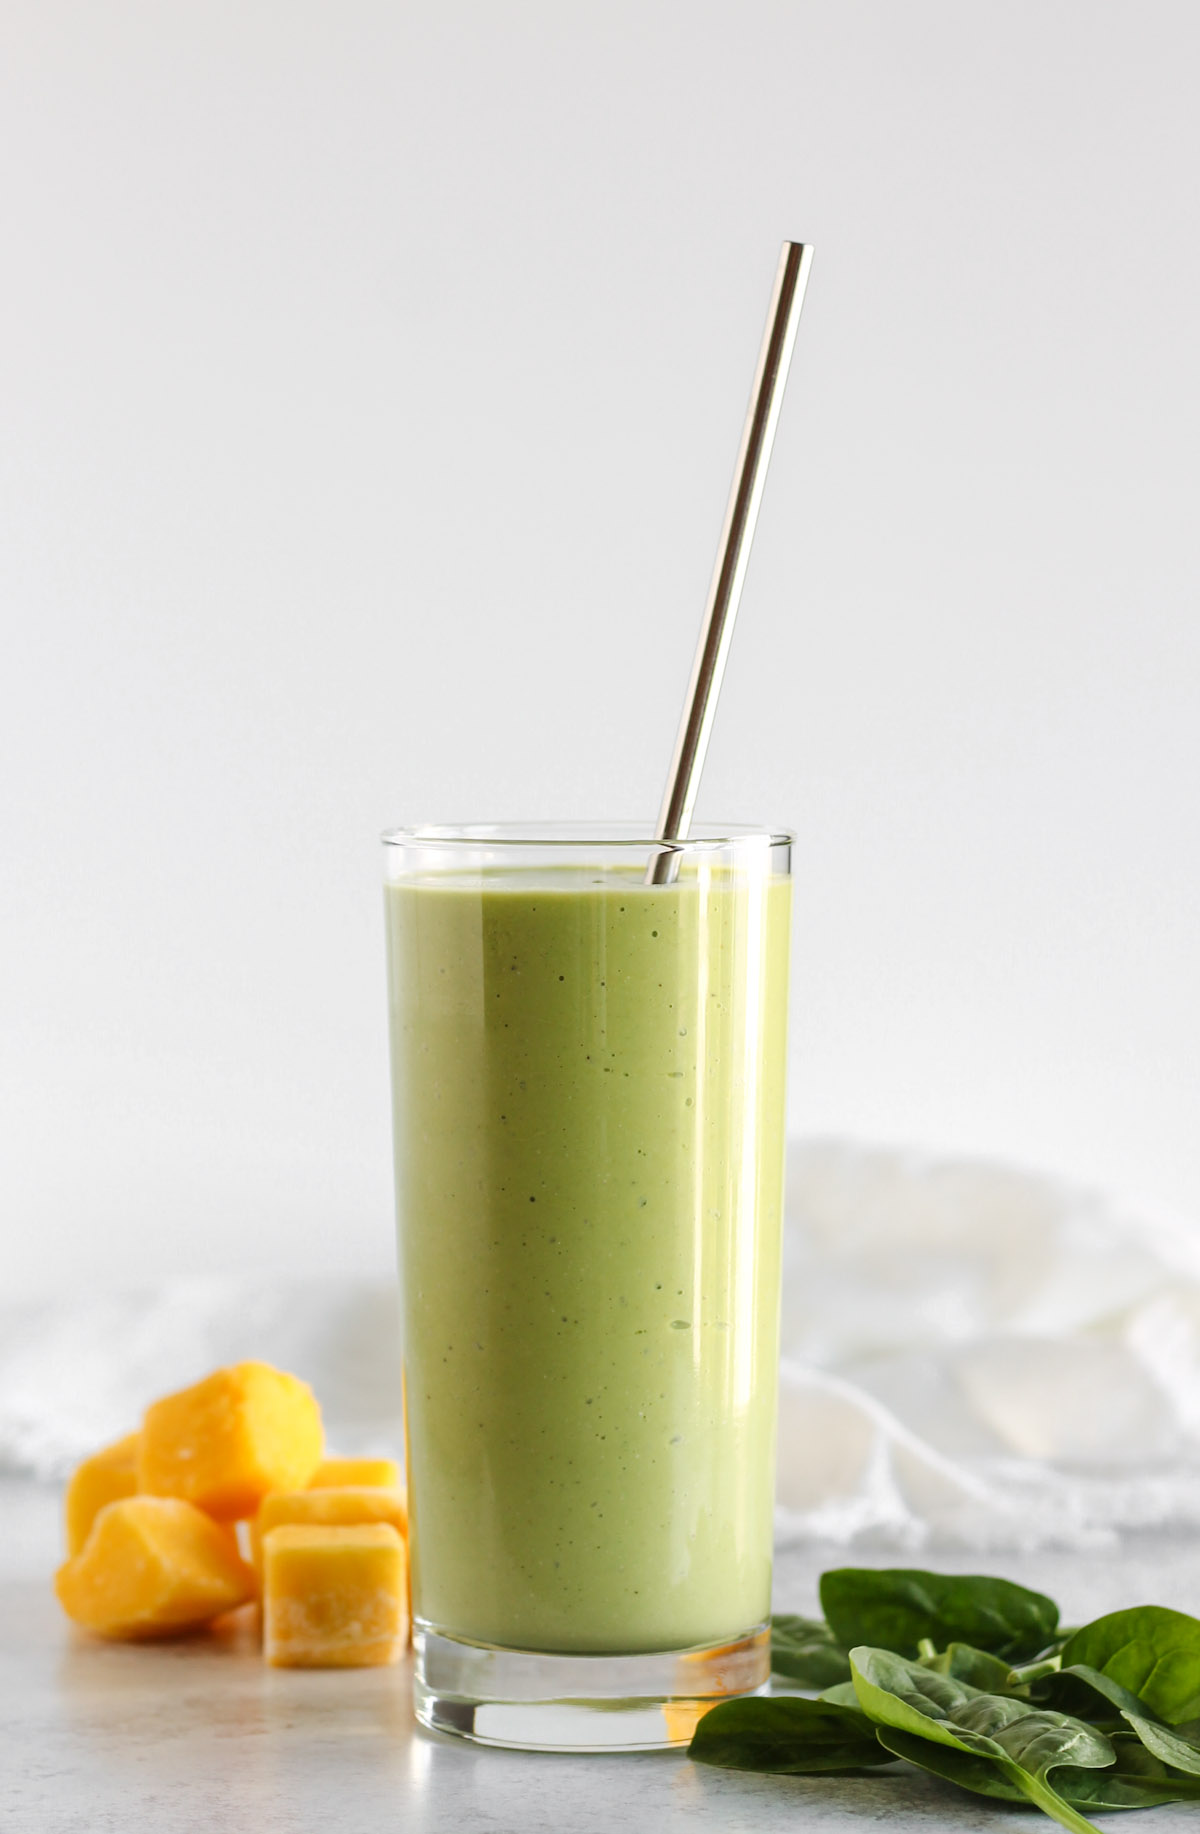 Spinach mango smoothie in a tall glass with a stainless steel straw.